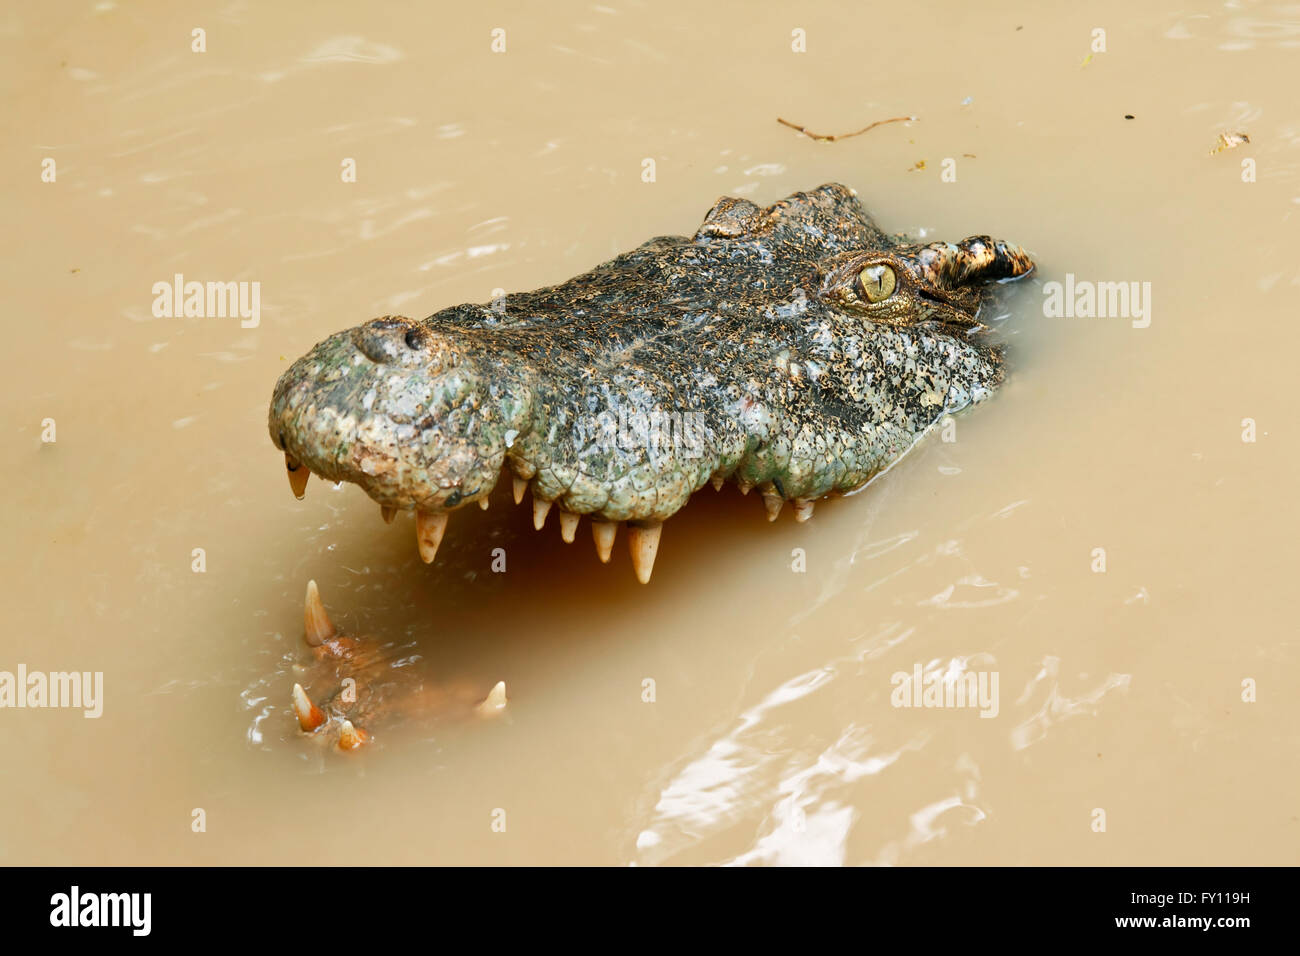 Crocodile head in the water - Stock Image